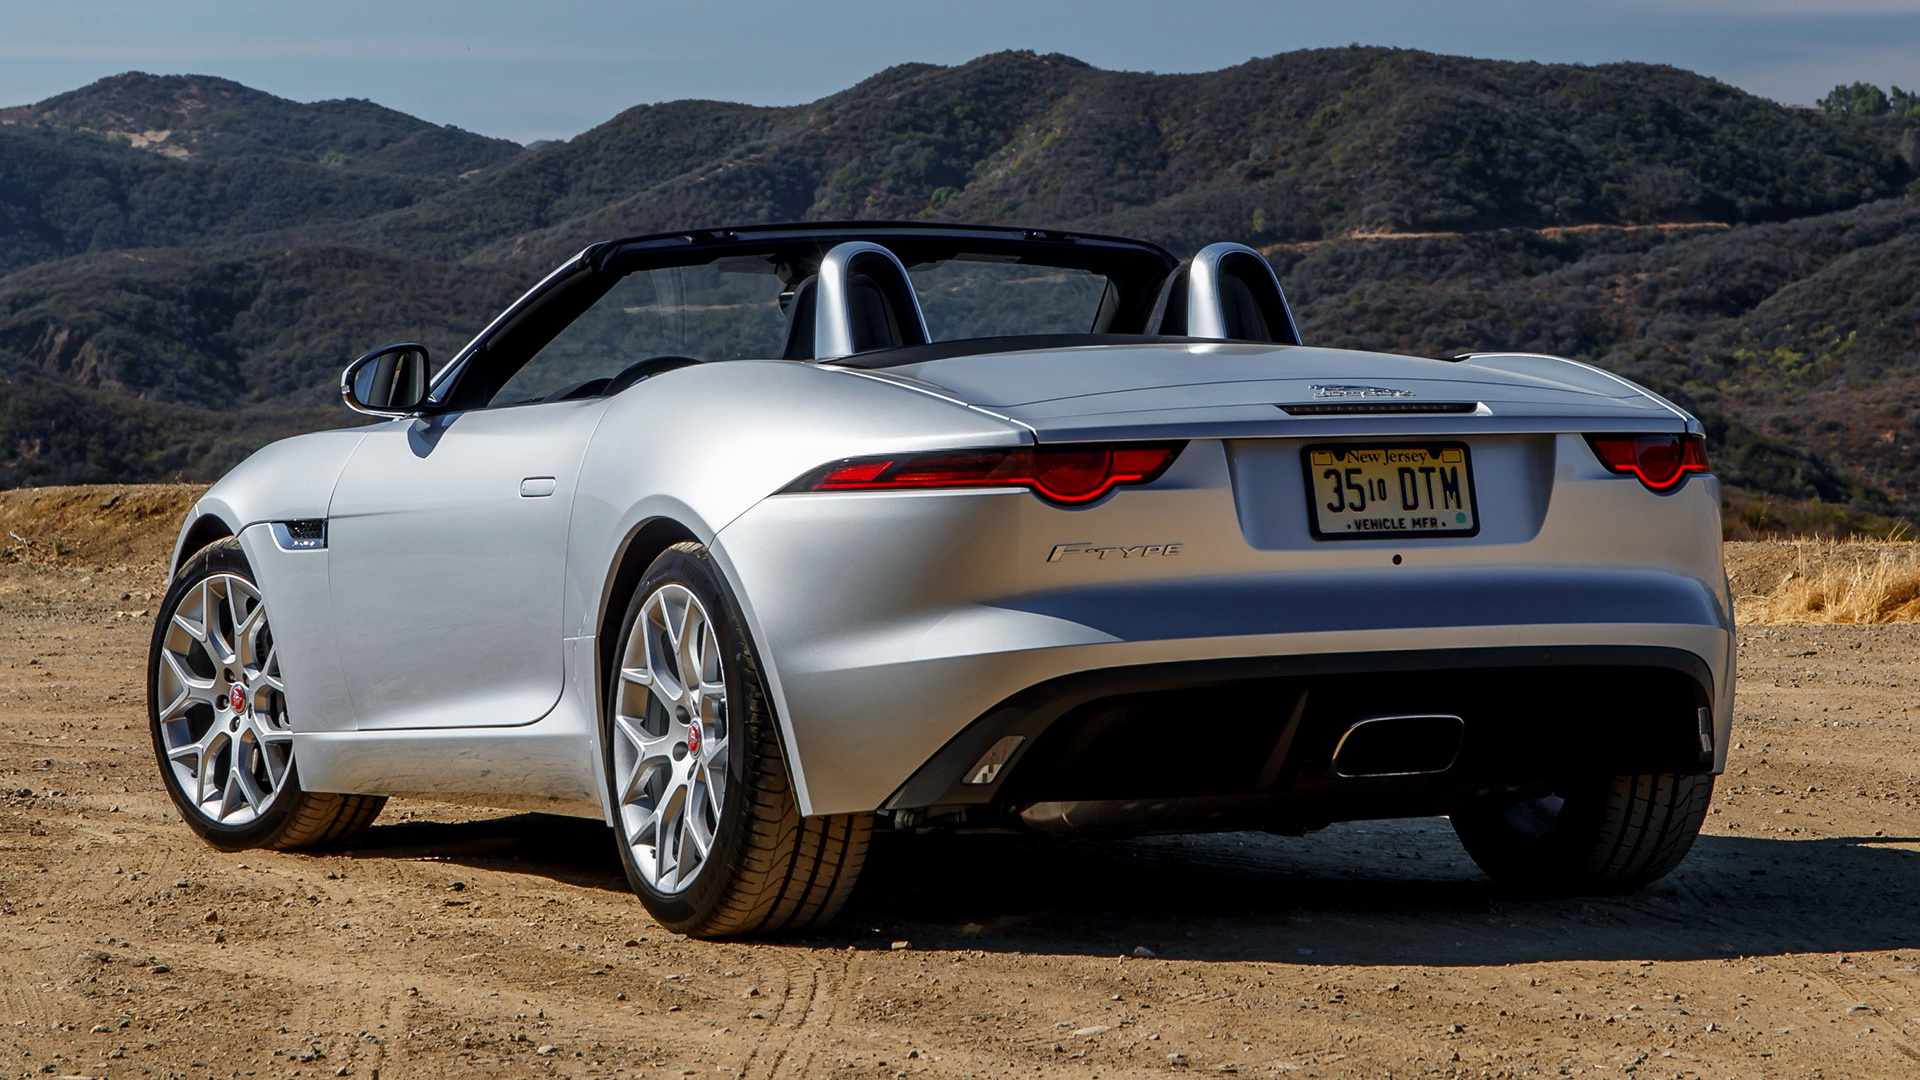 Jaguar F Type Convertible >> 2018 Jaguar F-Type Convertible (US) - Wallpapers and HD Images | Car Pixel